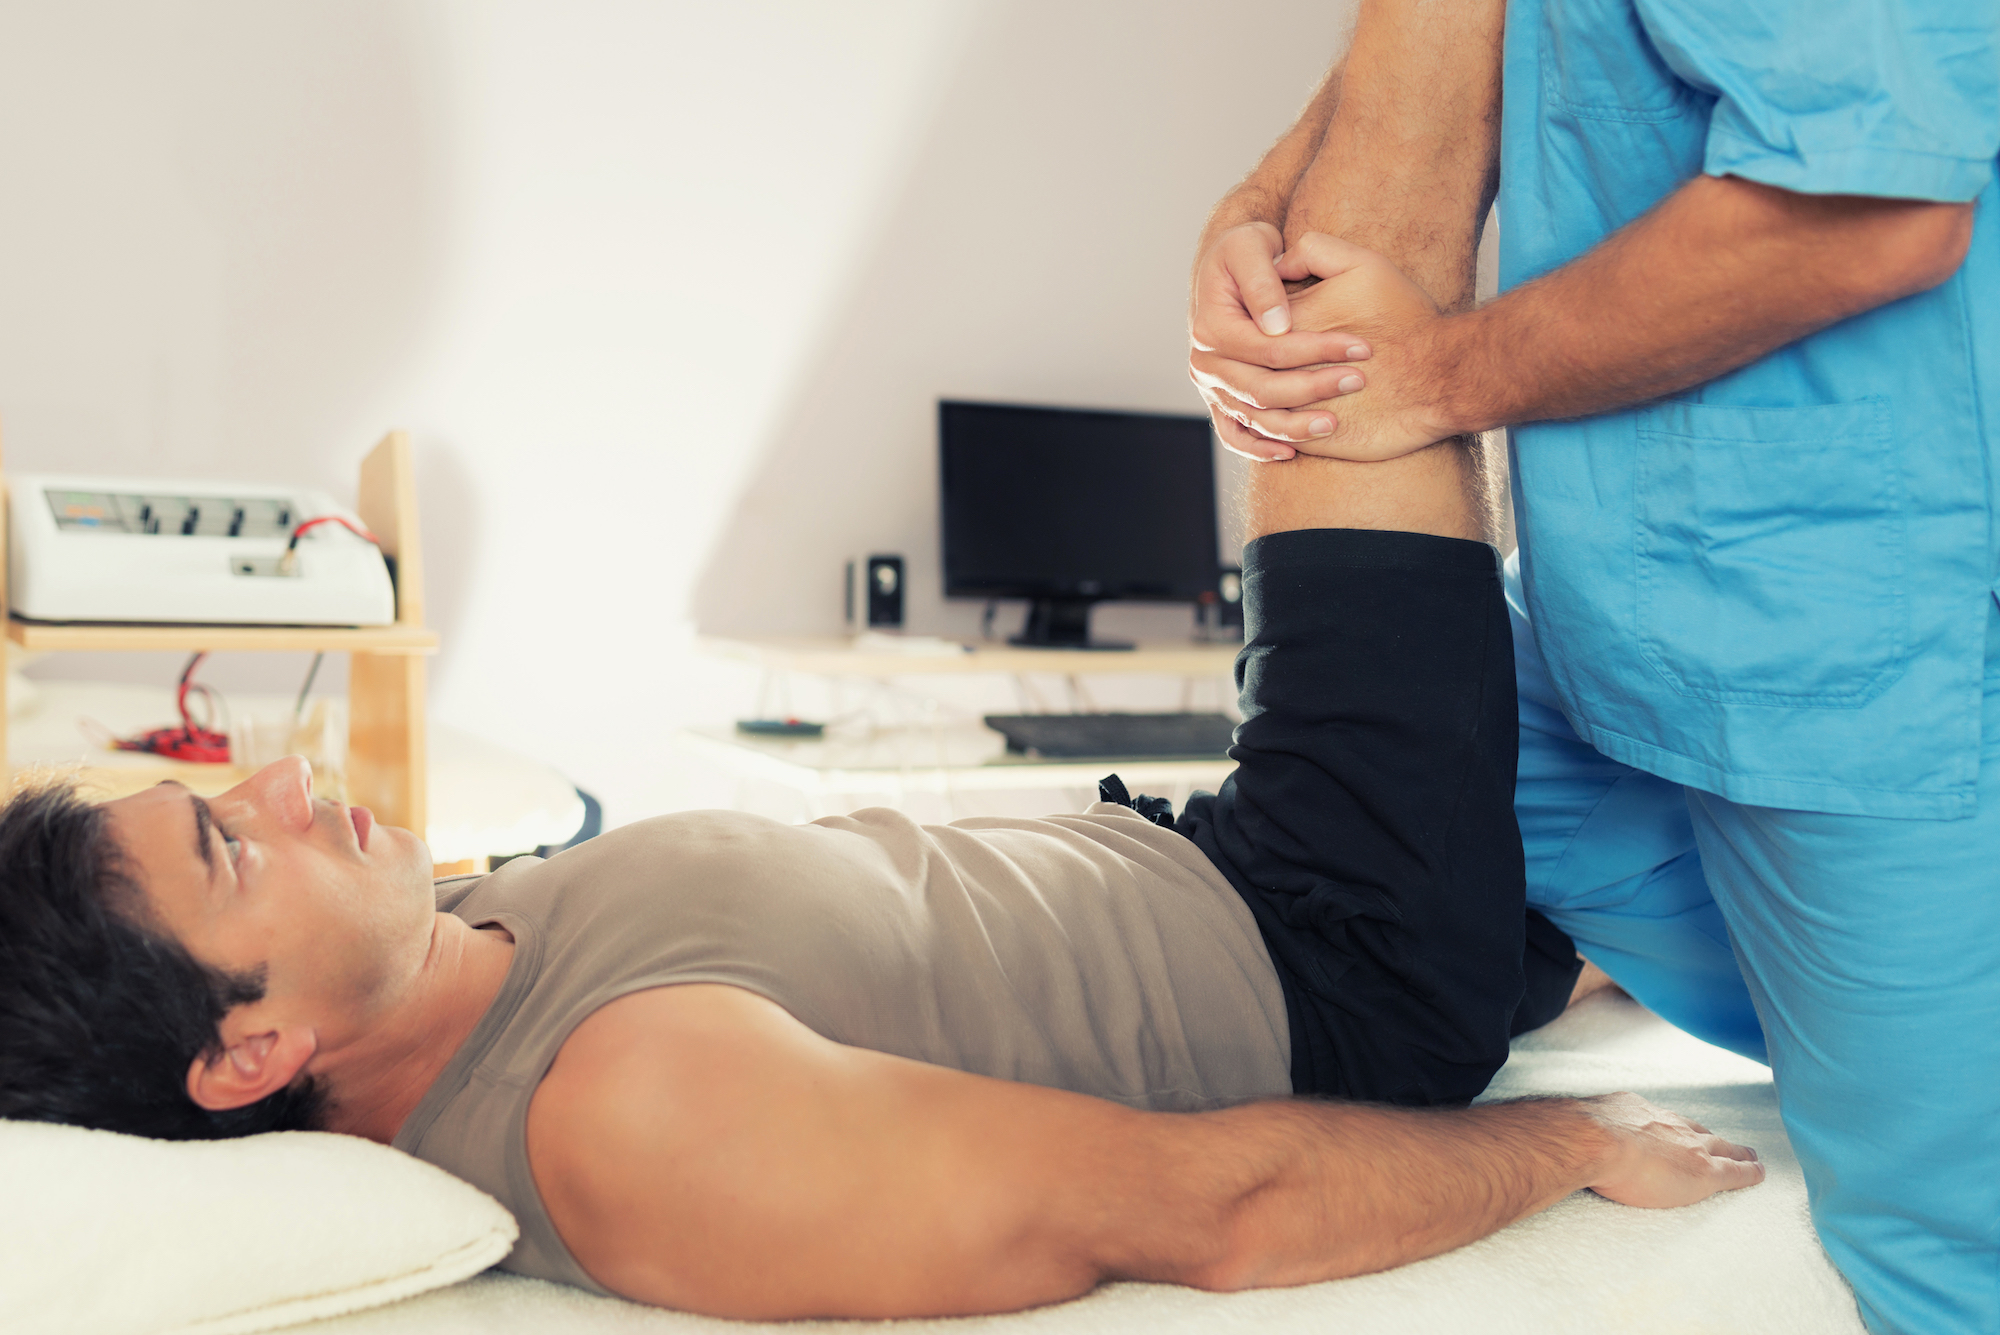 physiotherapist-working-with-patient-leg-PL4WCEX.jpg